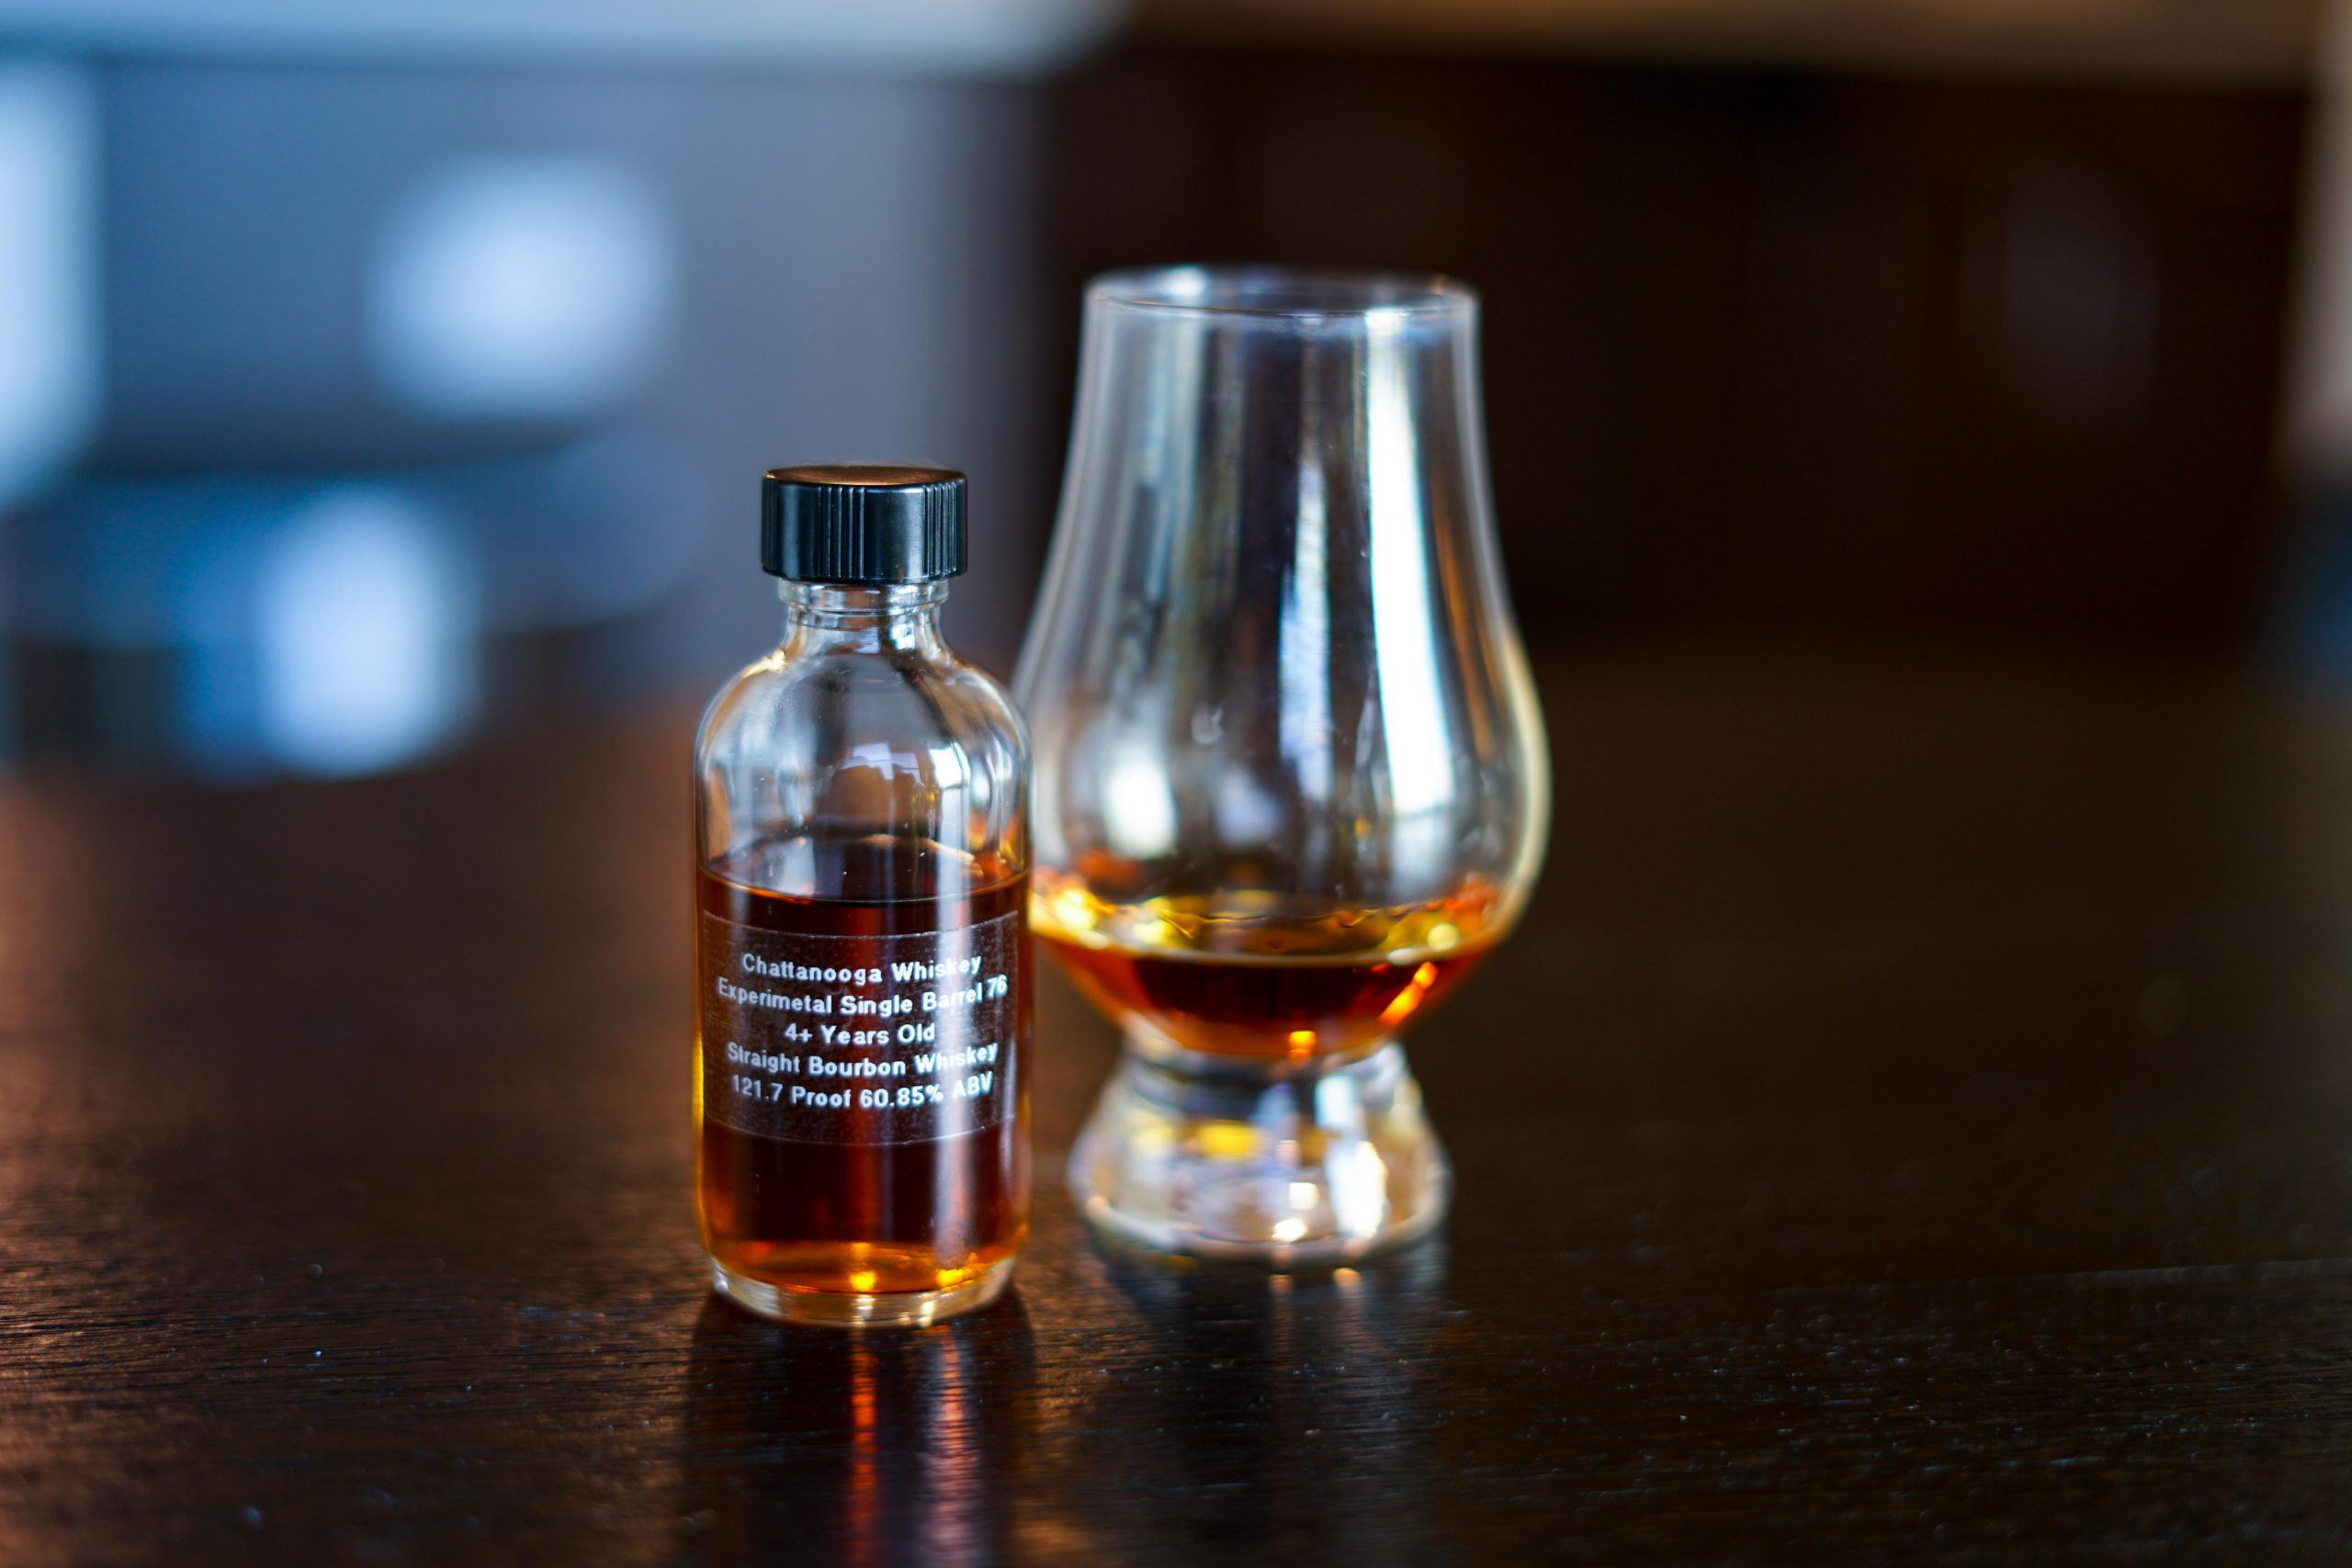 Chattanooga Whiskey Experimental Batch #76 Limited Edition Single Barrel